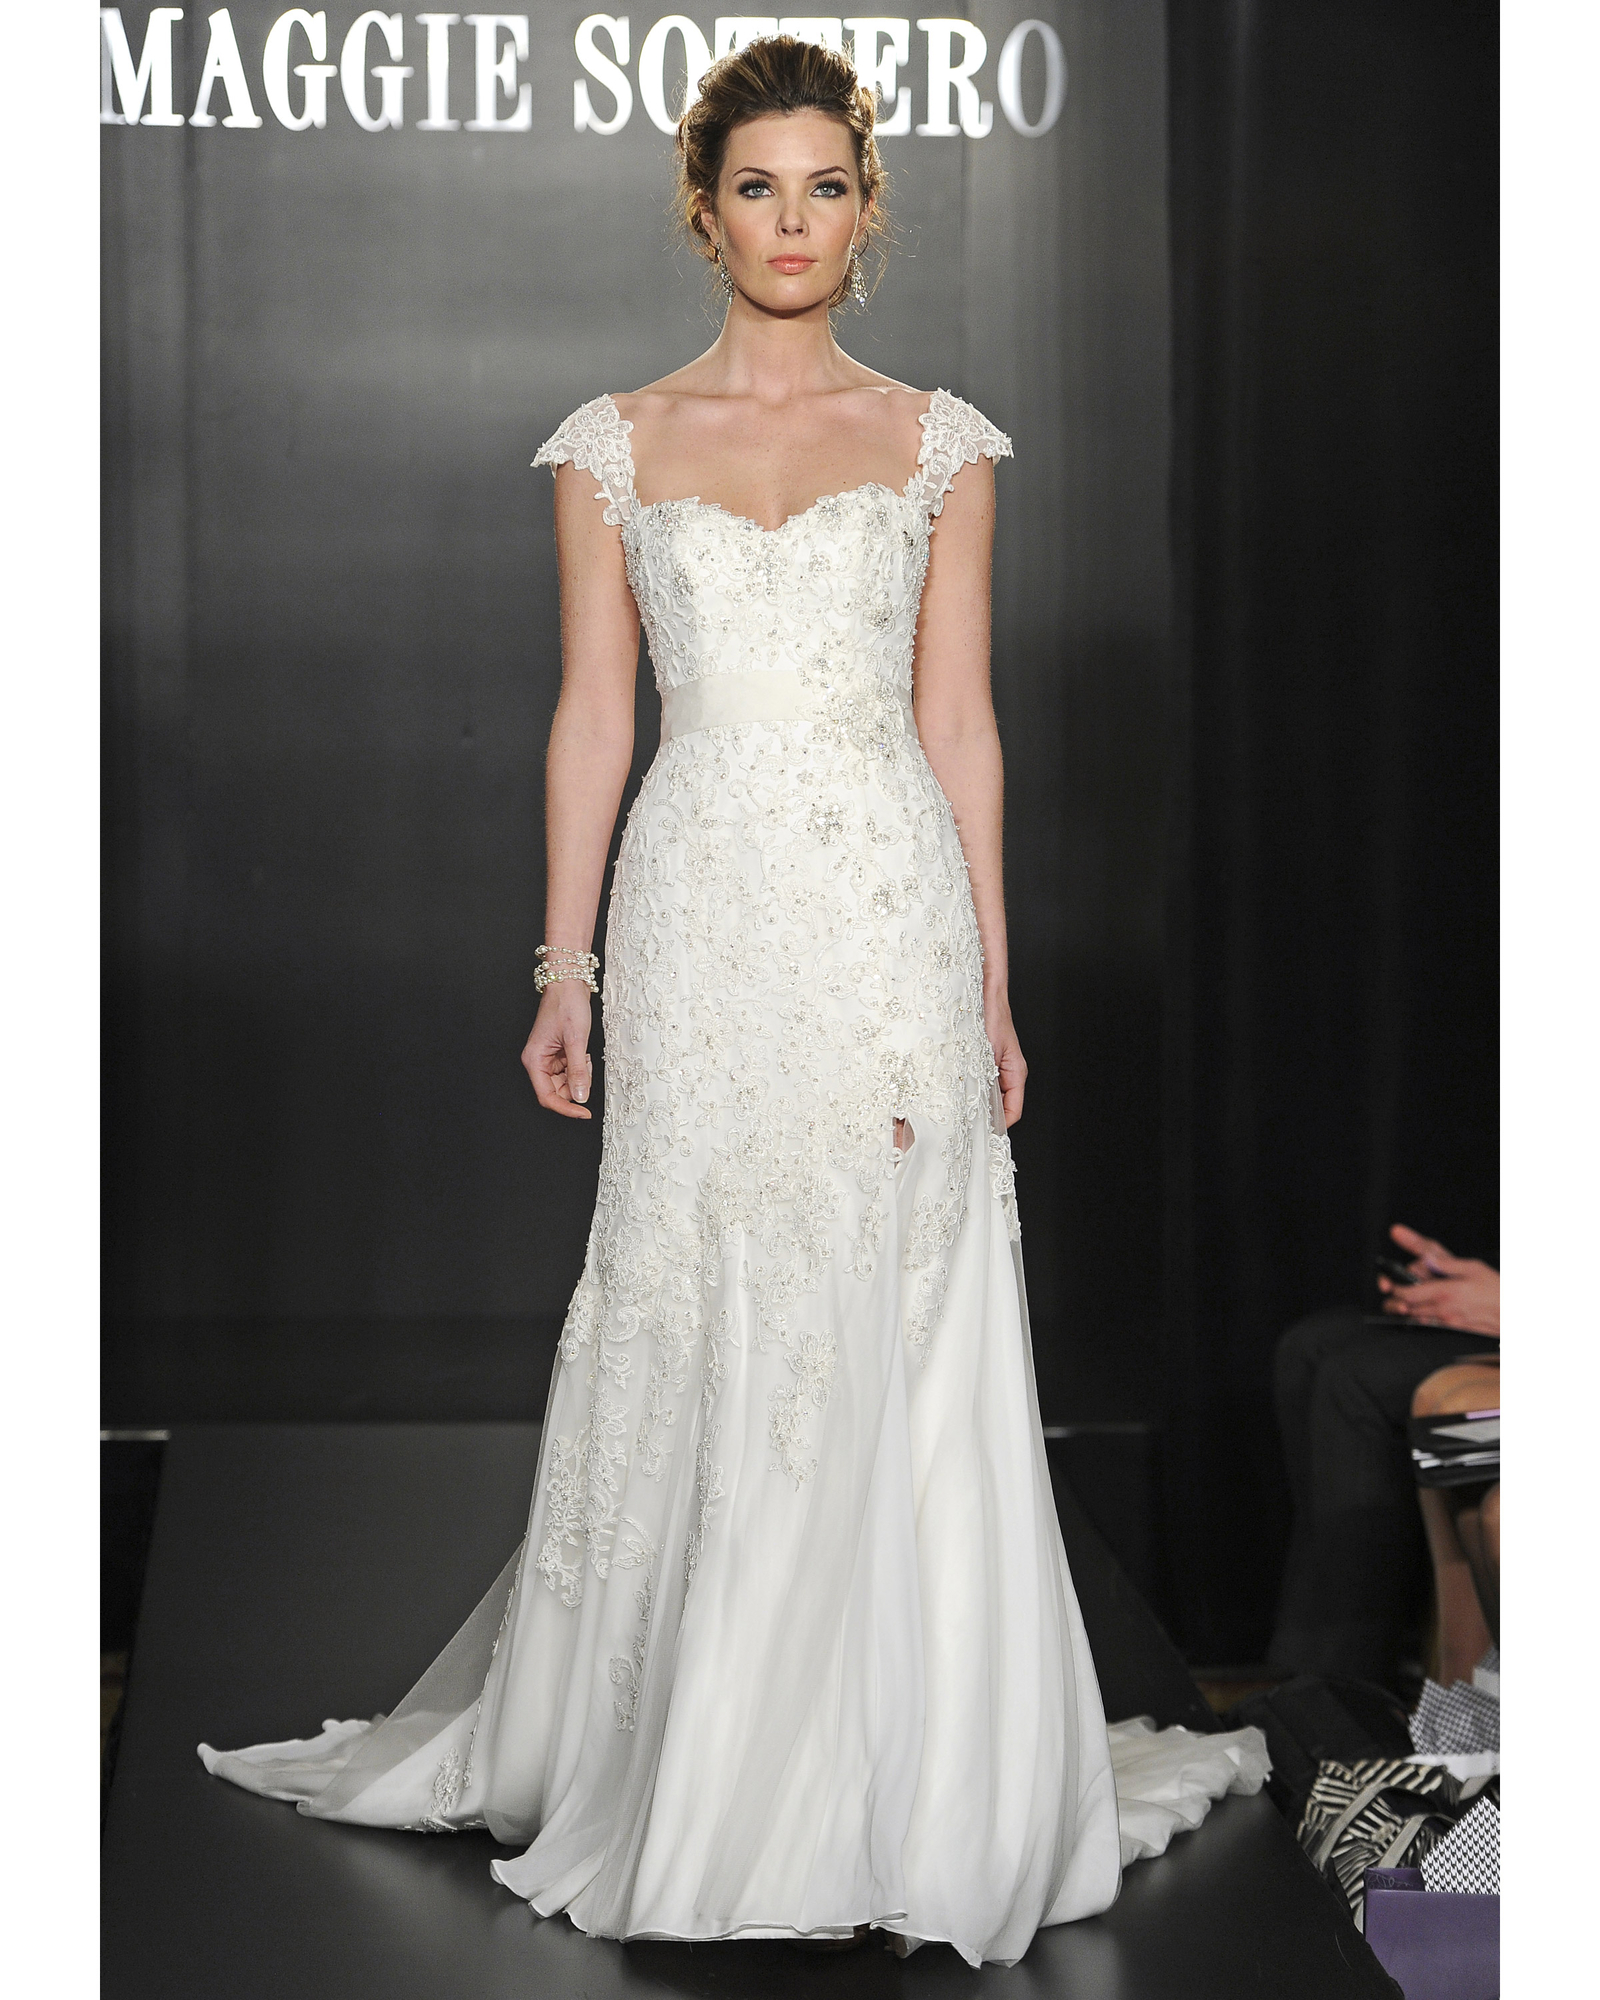 maggie-sottero-spring2013-wd108745-010.jpg